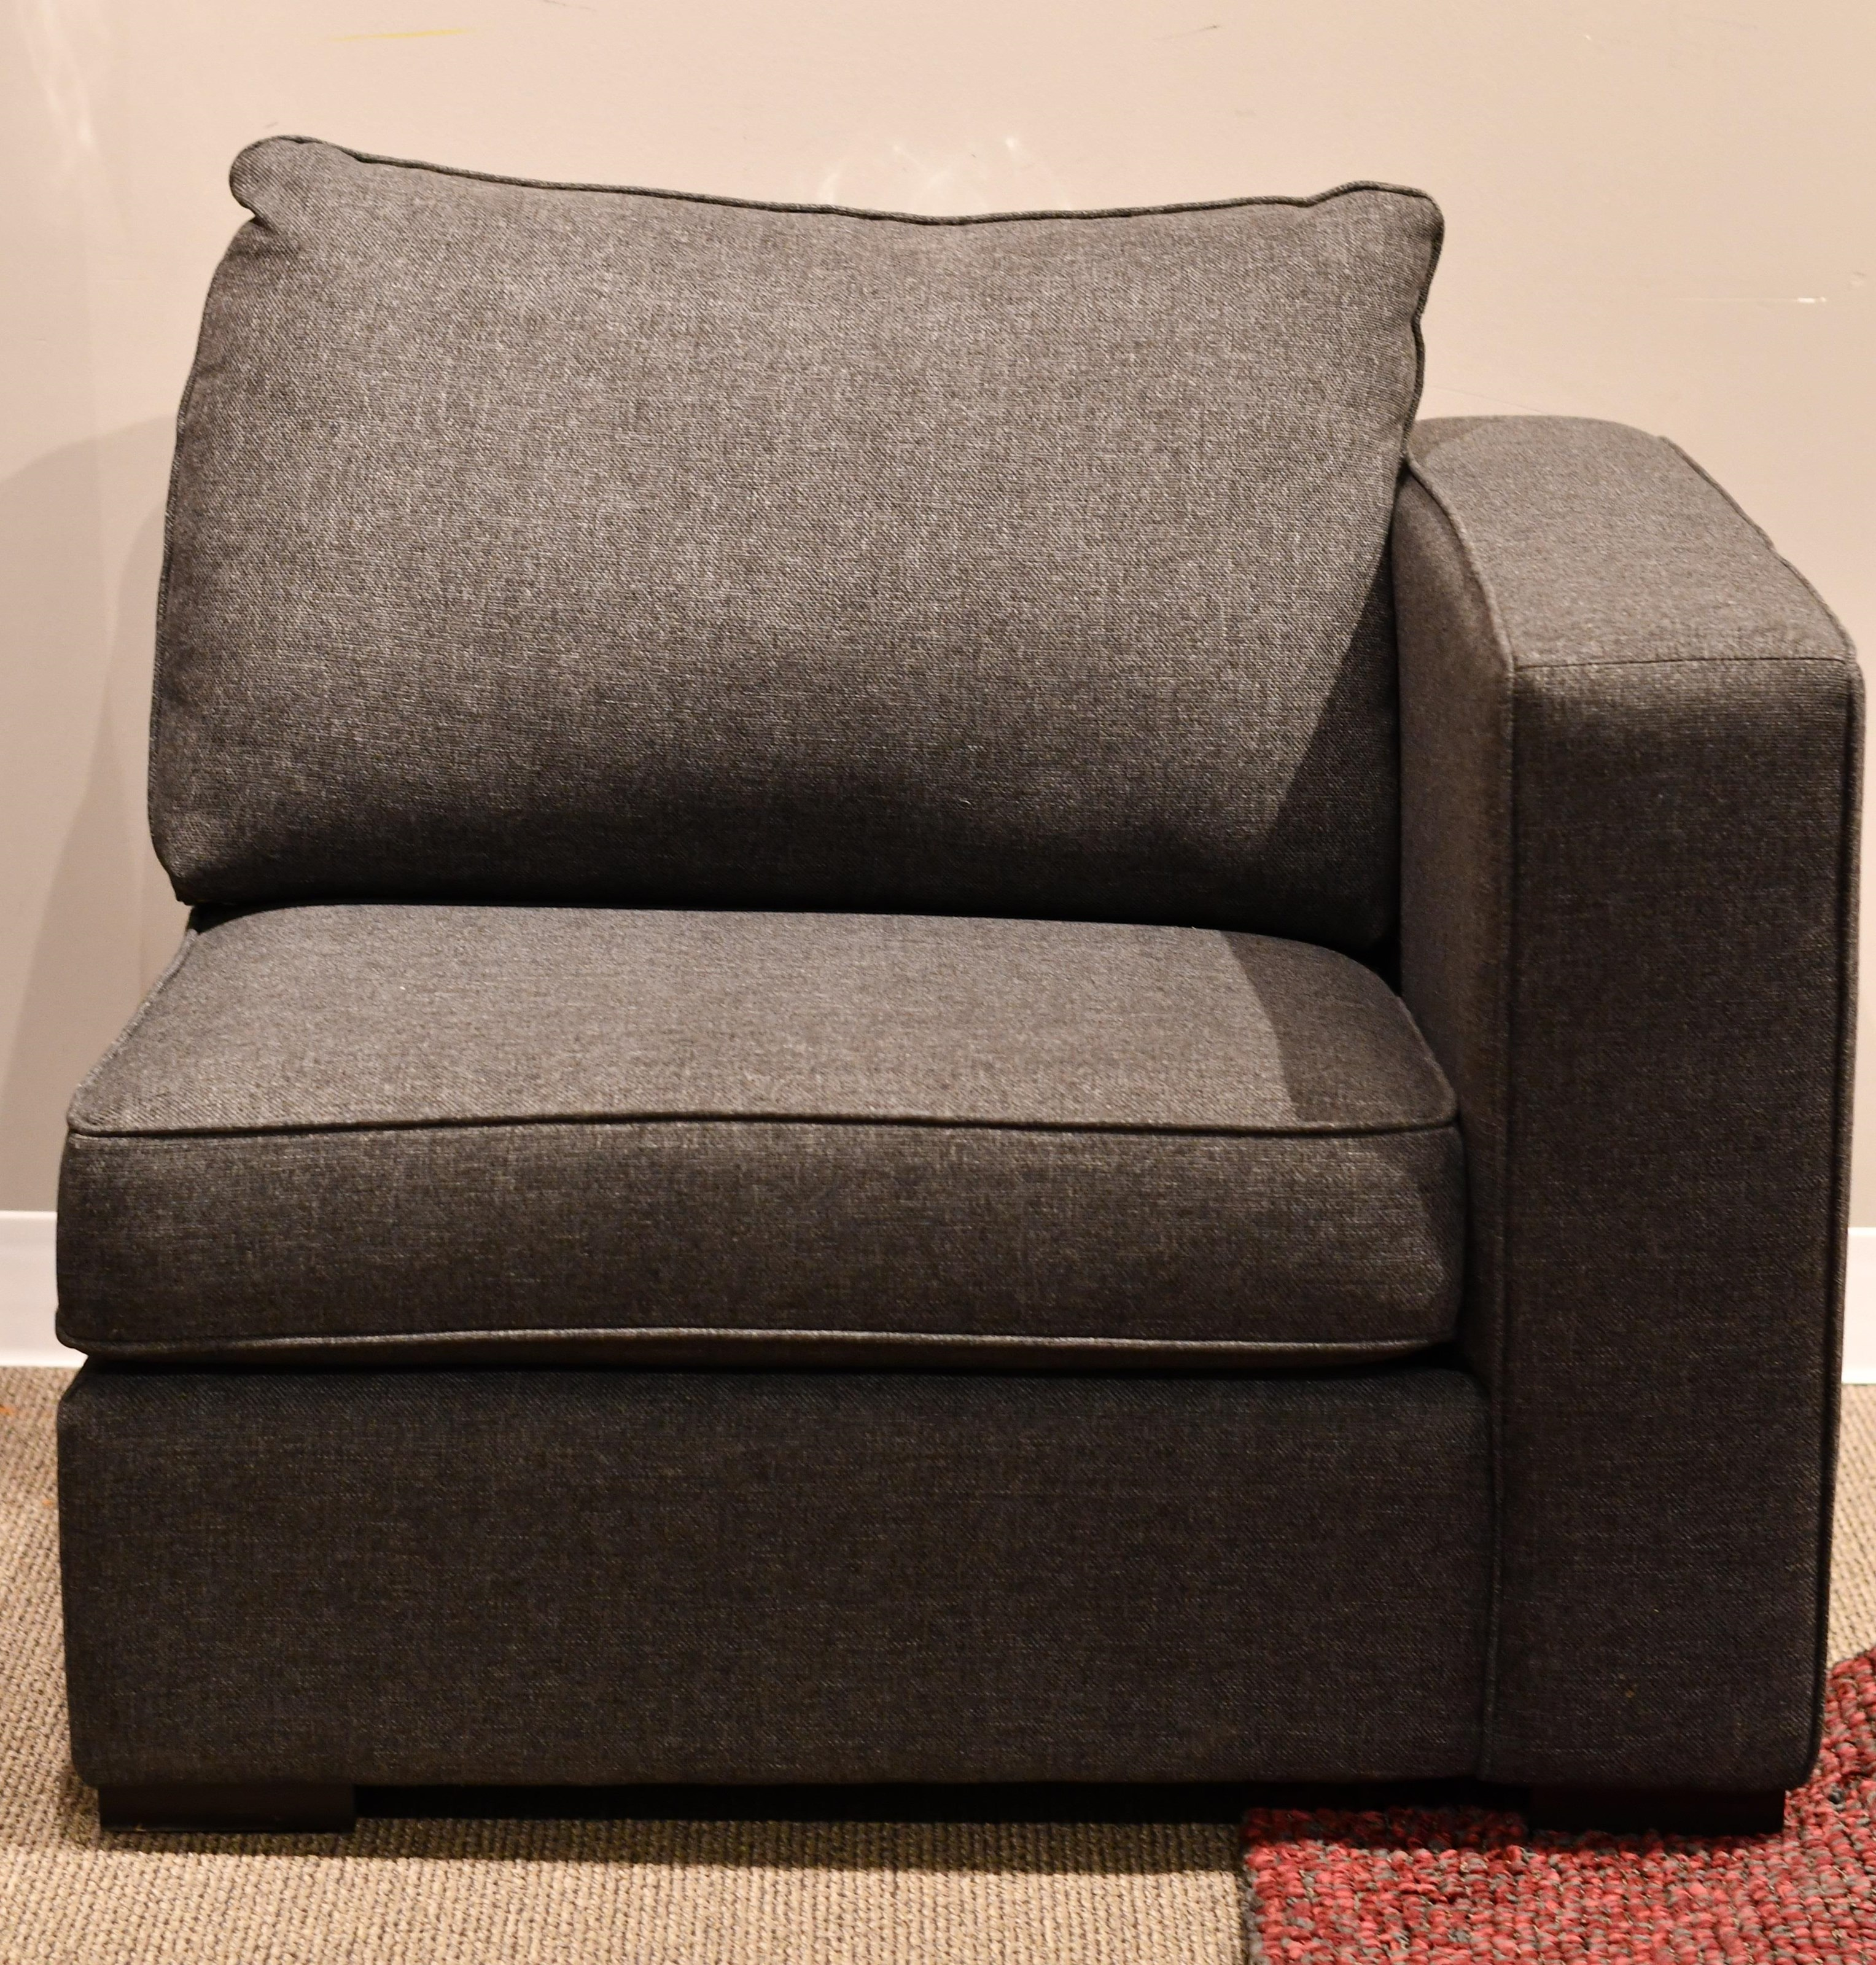 Braden RHF Chair by Taelor Designs at Bennett's Furniture and Mattresses